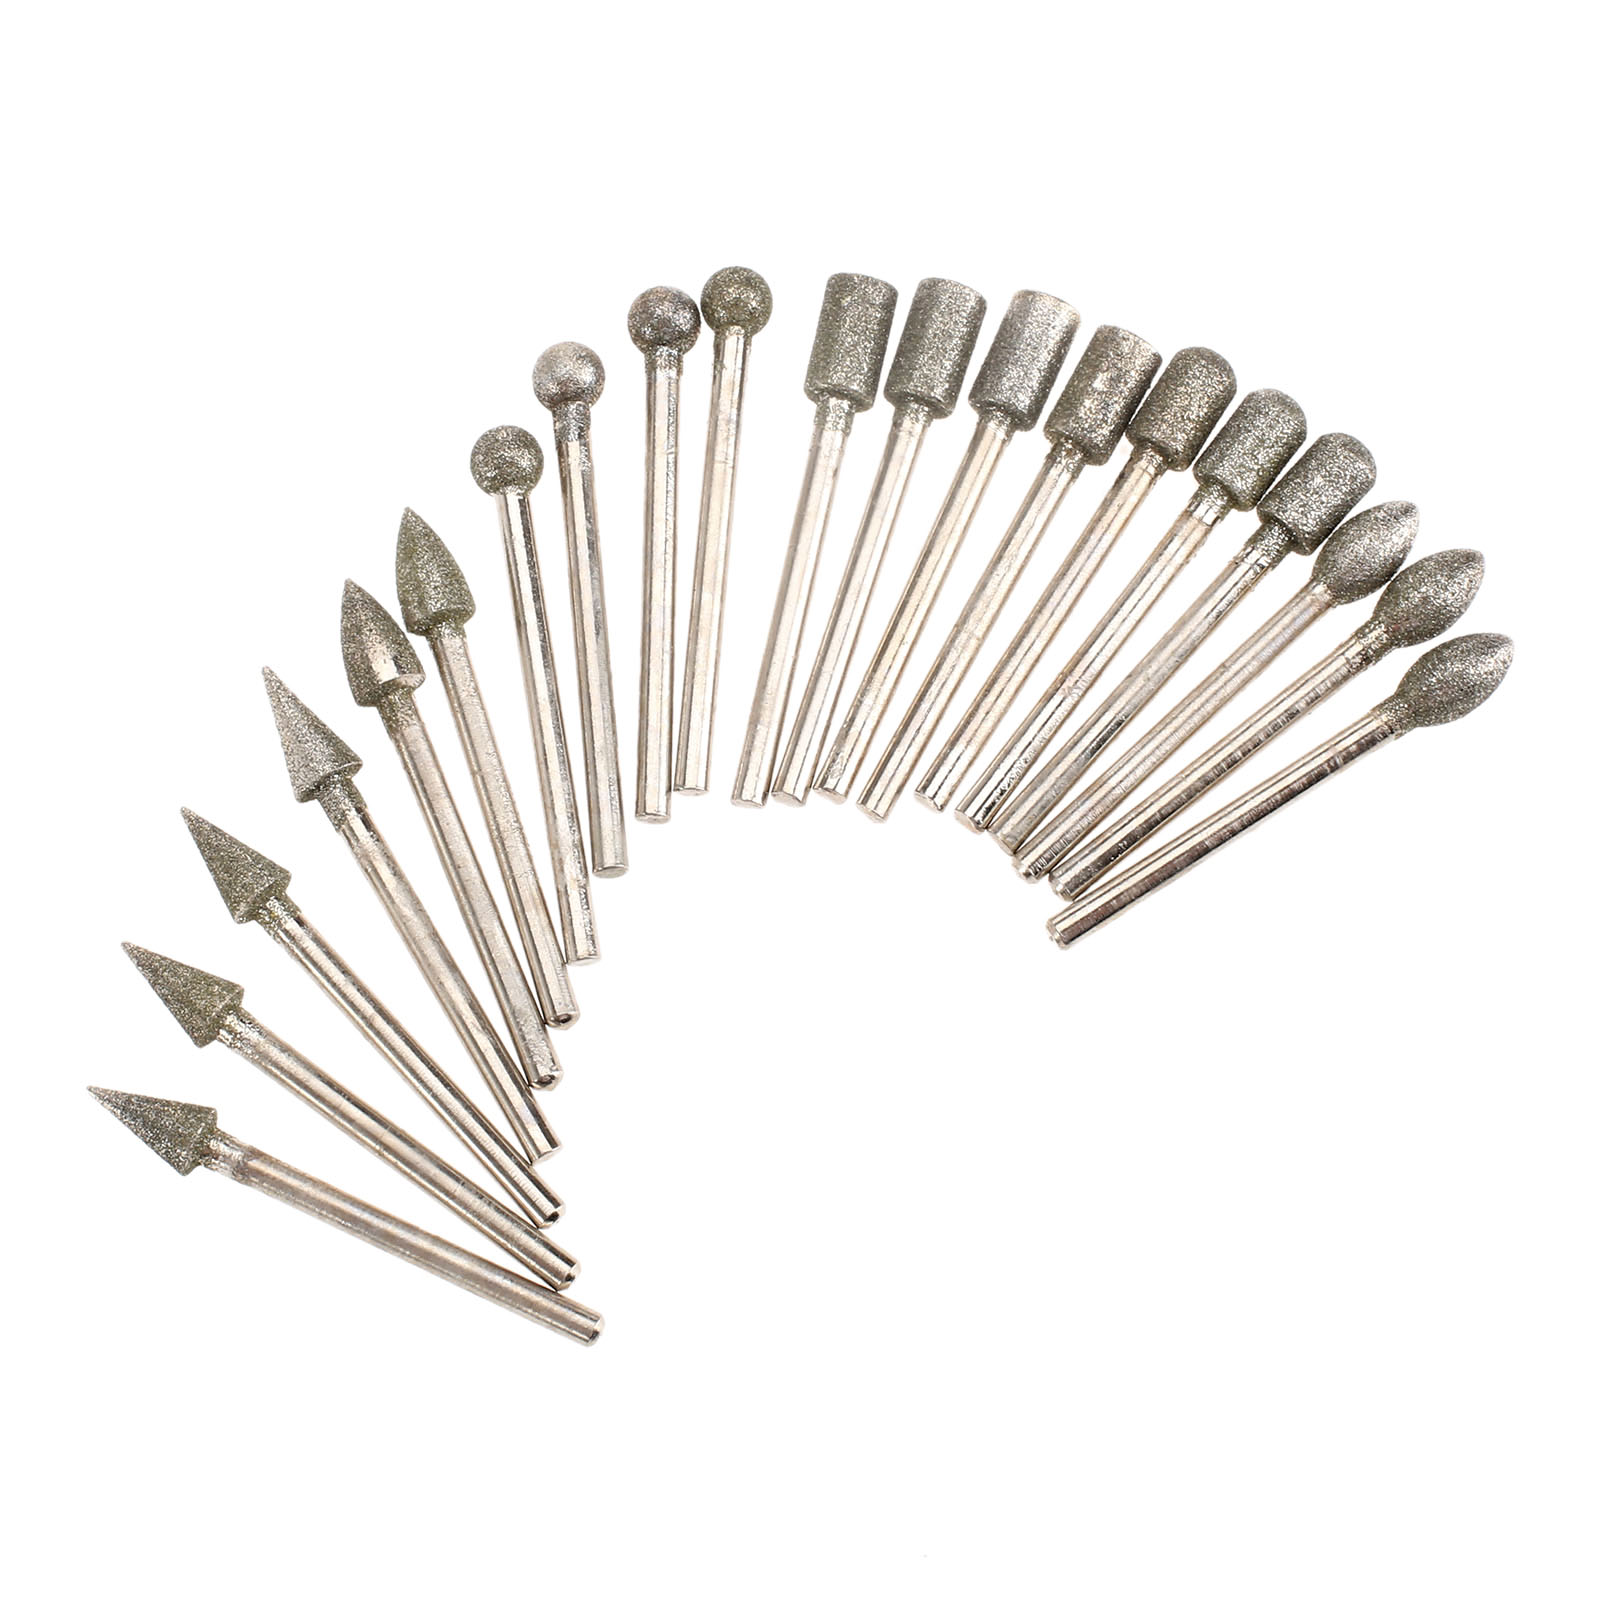 20Pcs Dremel Accessories Diamond Grinding Heads Mini Drill Burrs Bit Set For Dremel Rotary Tool Grinding Accessories 3mm Shank